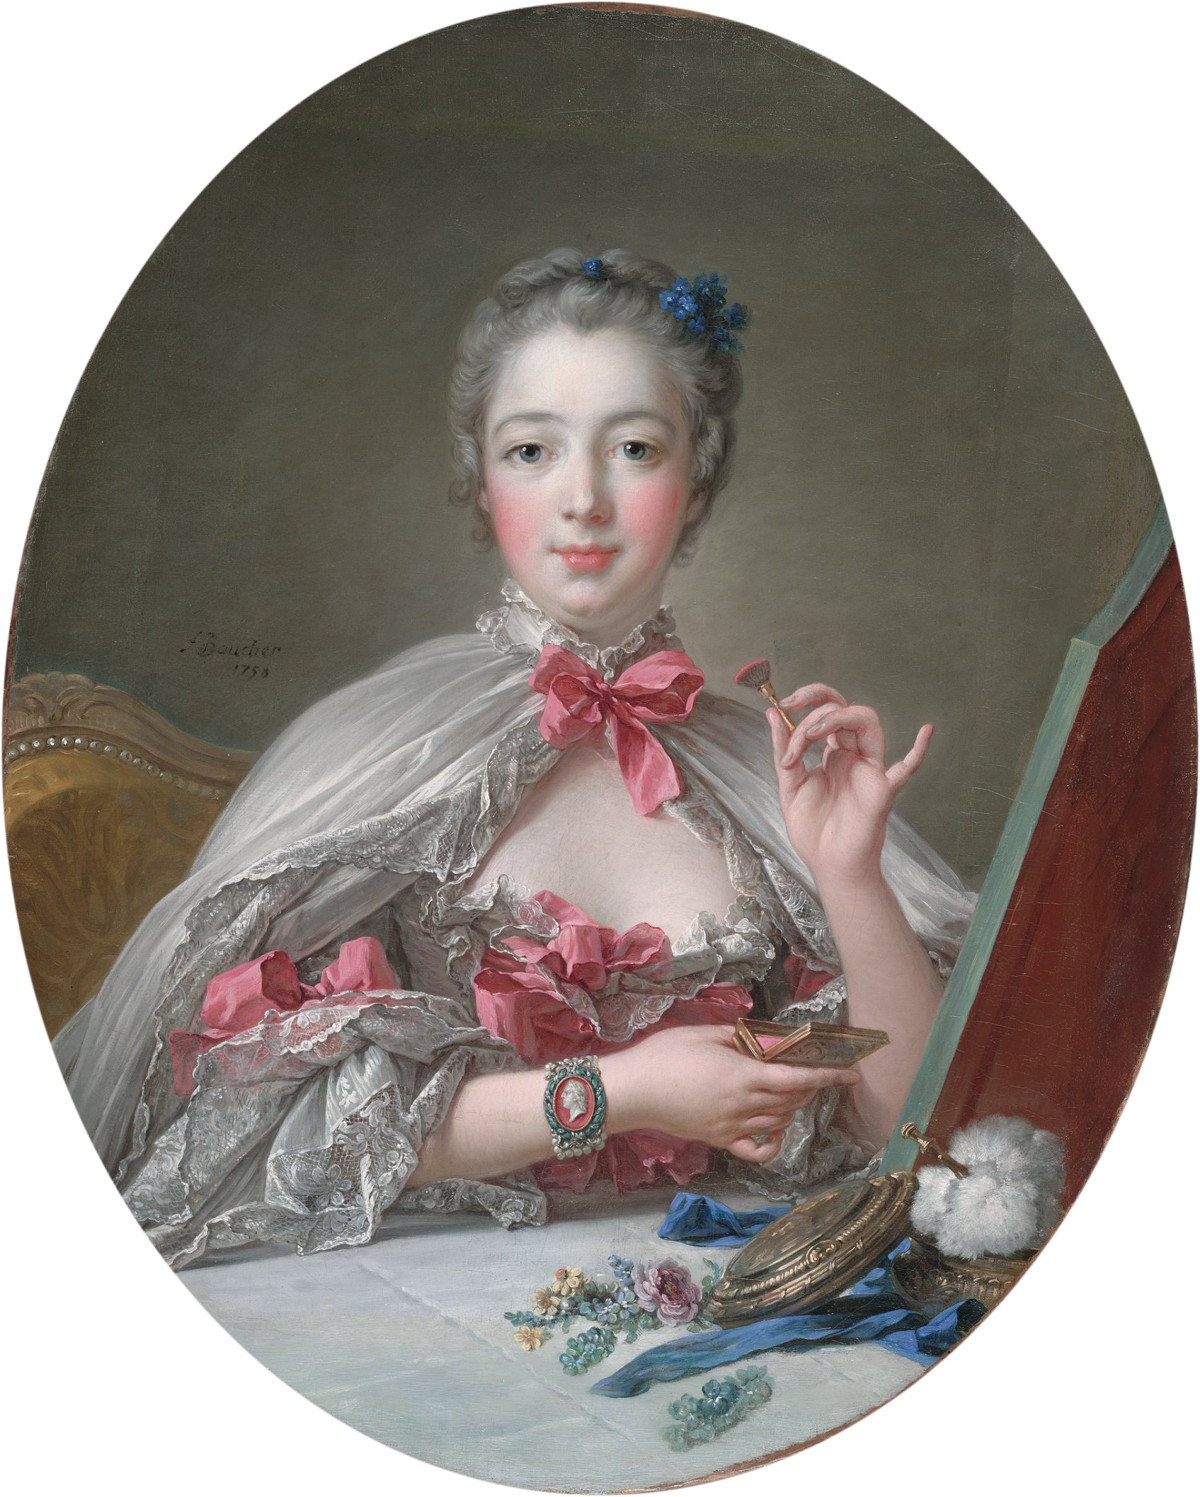 Madame de Pompadour at Her Toilette, 1758